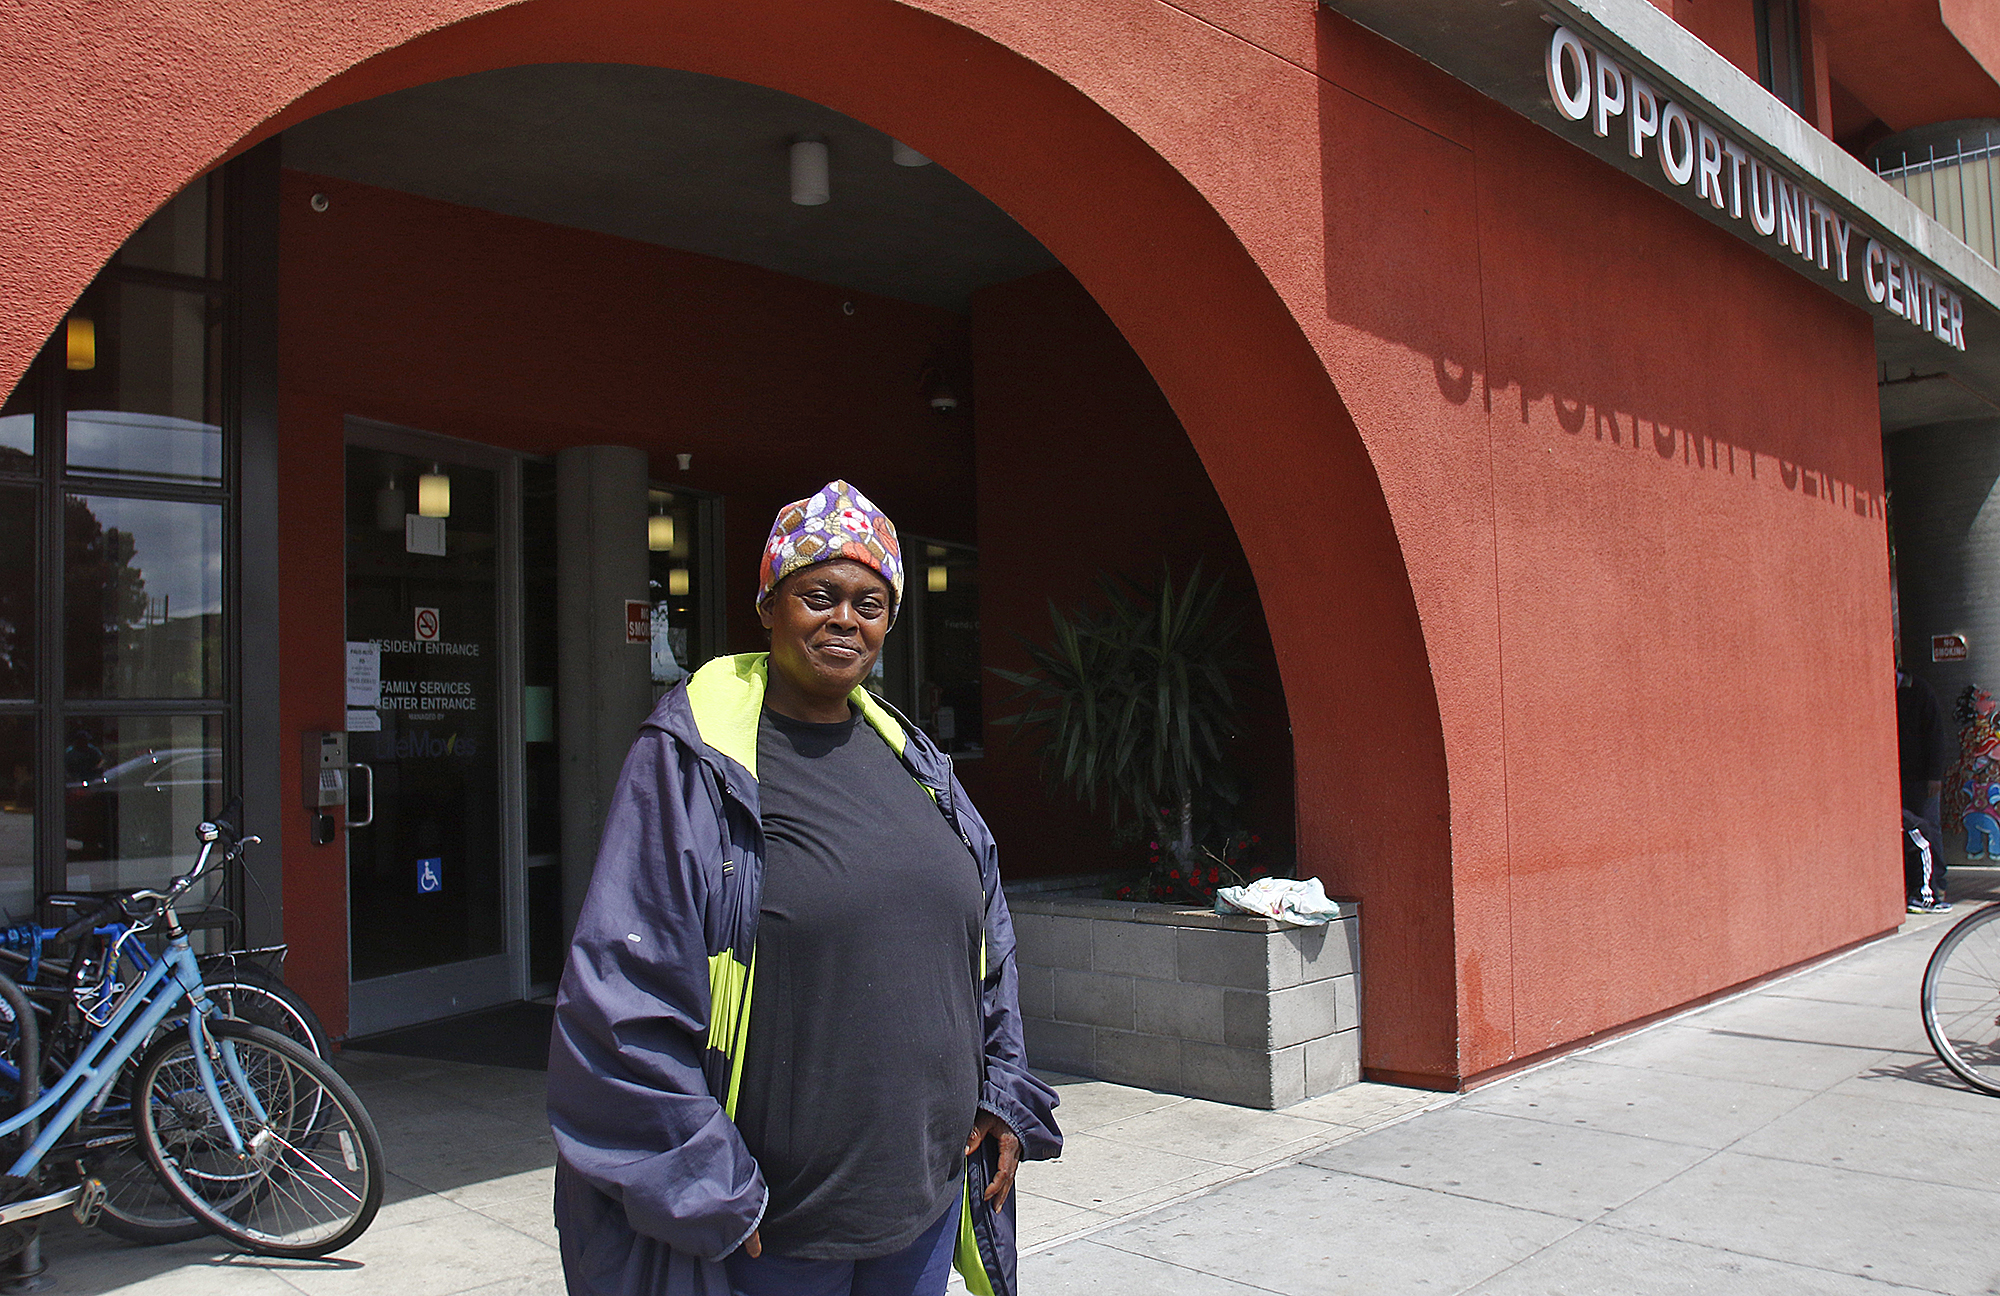 Mae Law, a native of Santa Cruz, grew up in East Palo Alto but became homeless after falling into addiction. She's now clean and sober and looks forward to moving back to Santa Cruz after this October.